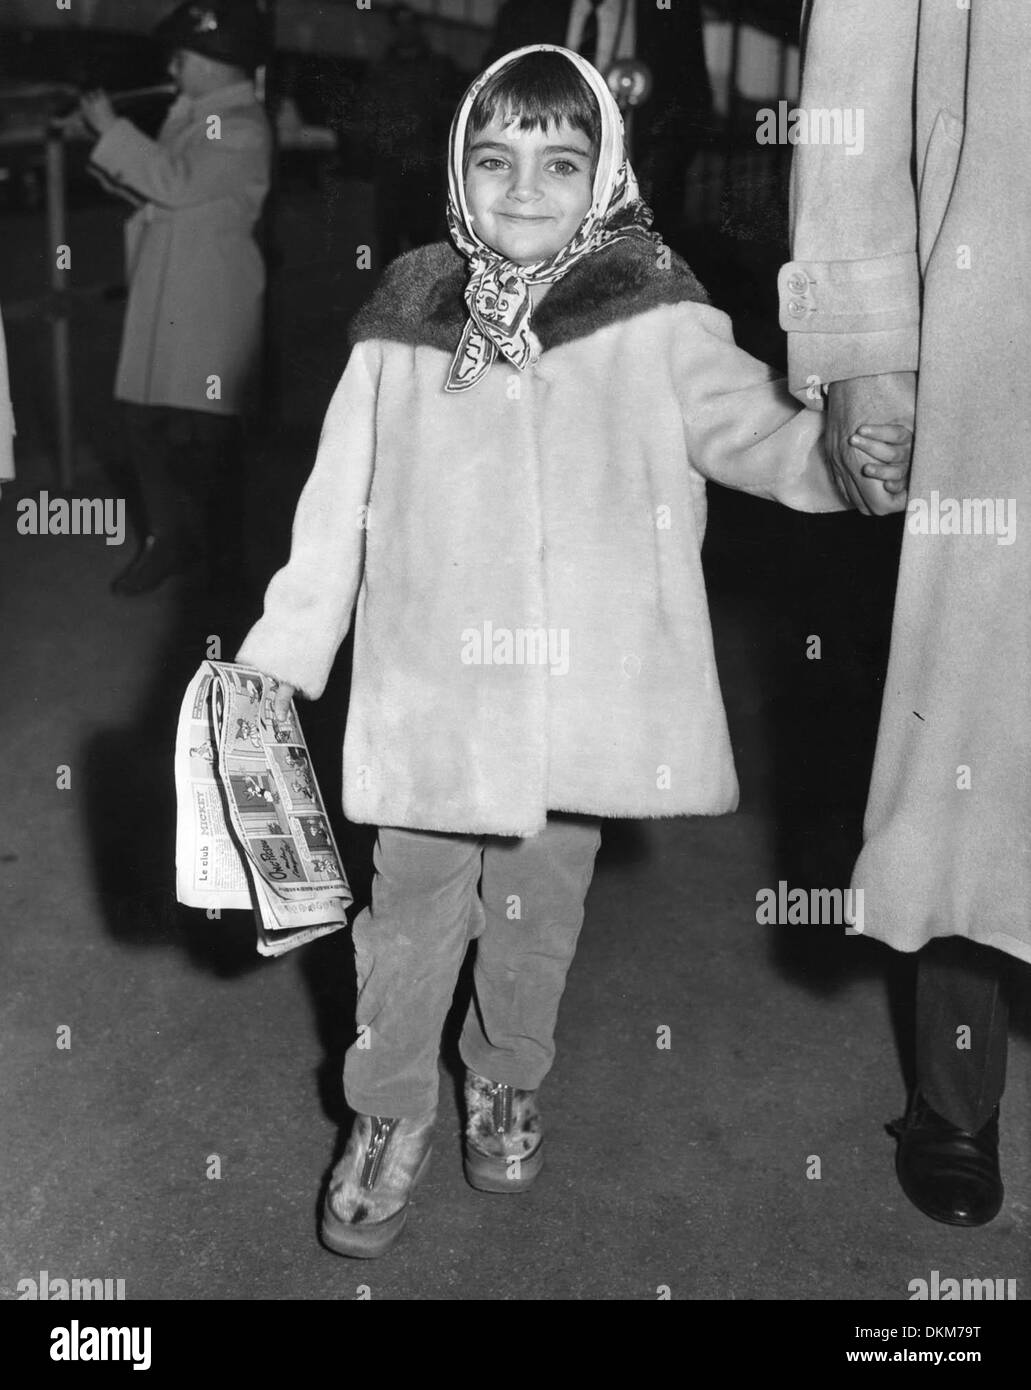 5d6c3ea778e7 17, 1962 - London, England, U.K. - LIZA TODD, daughter of Academy Award  winning actress Elizabeth 'Liz' Taylor, arrived in London to spend the  Christmas ...